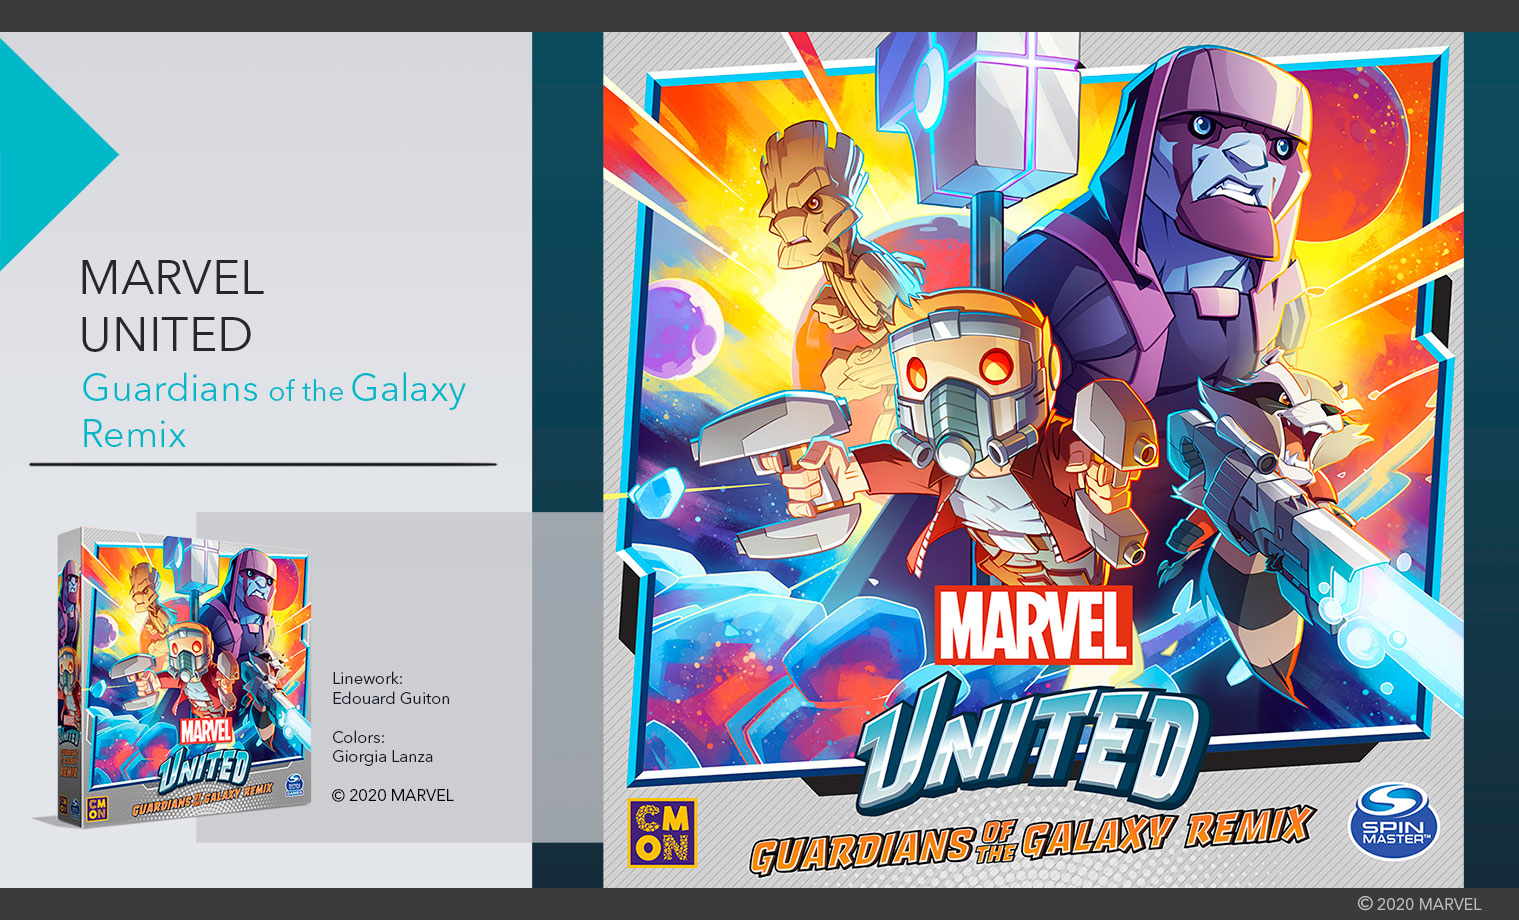 Marvel United-Giorgia Lanza